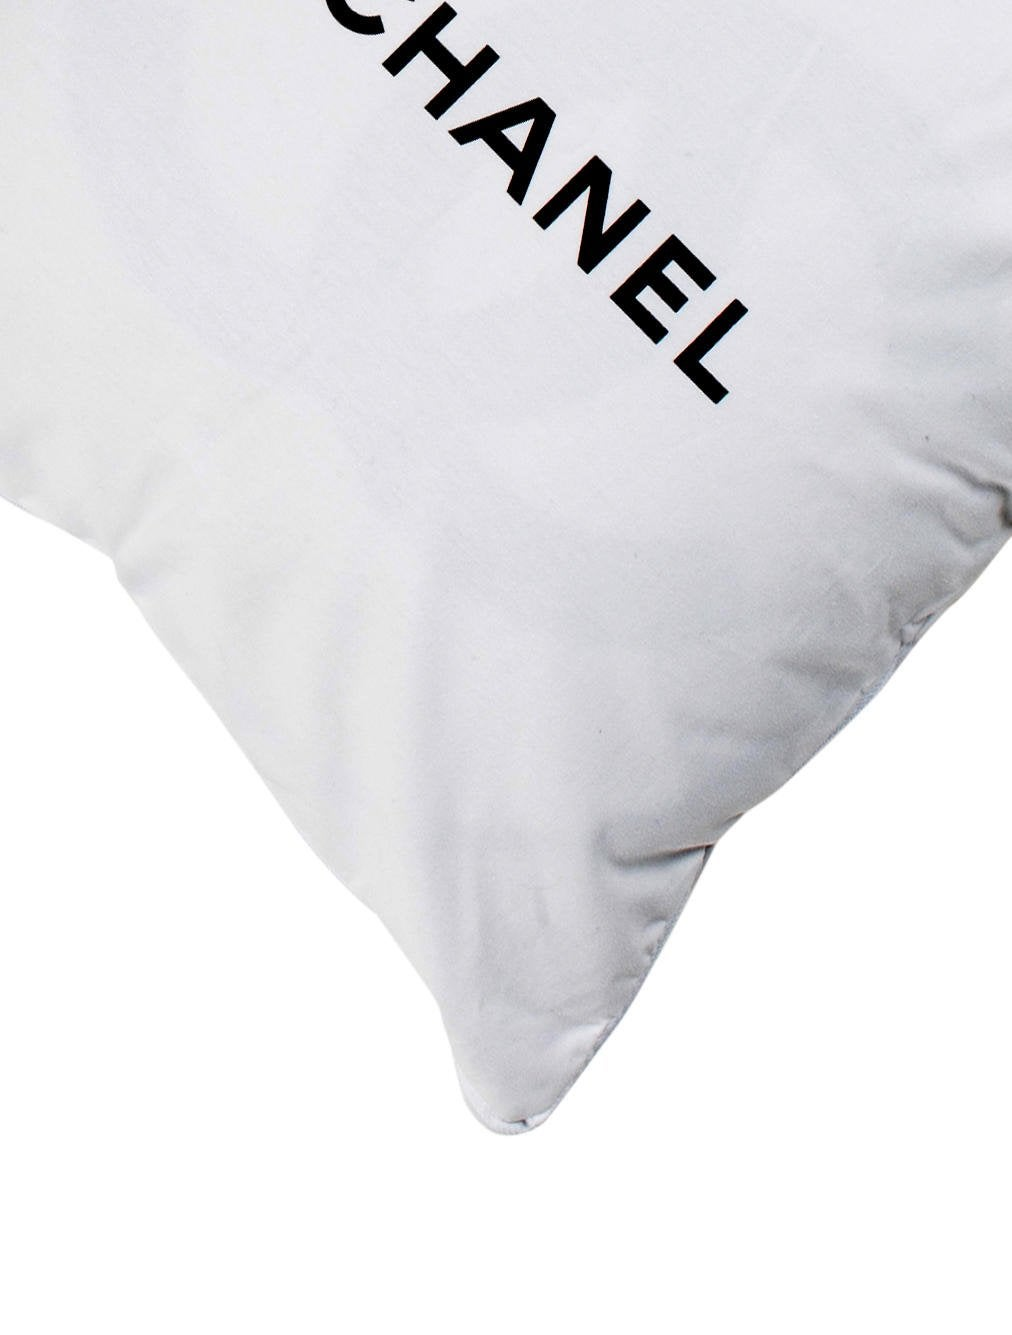 Chanel Wool Throw Pillow - Pillows And Throws - CHA190241 The RealReal